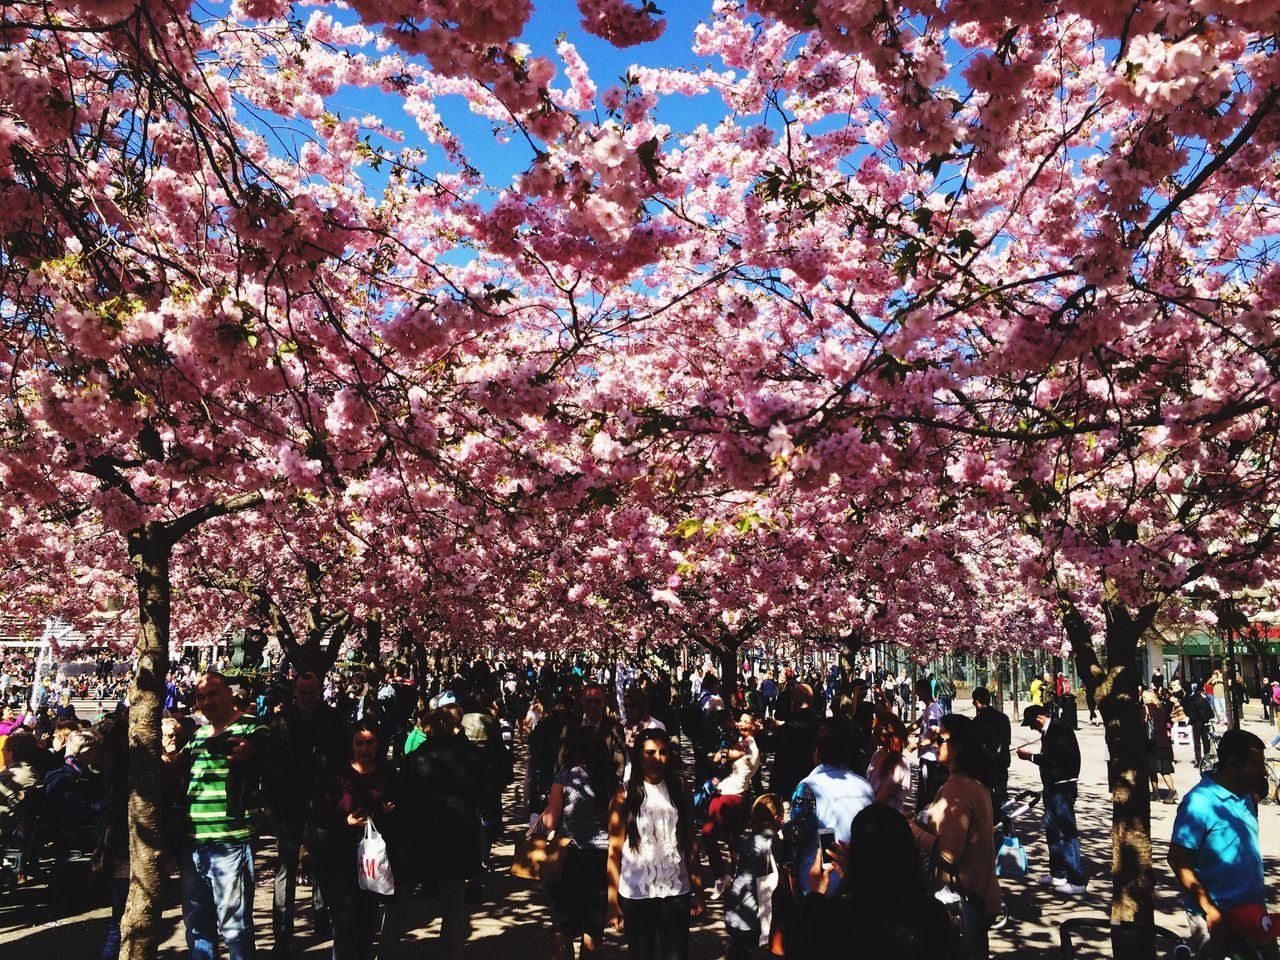 People walking under cherry blossom trees